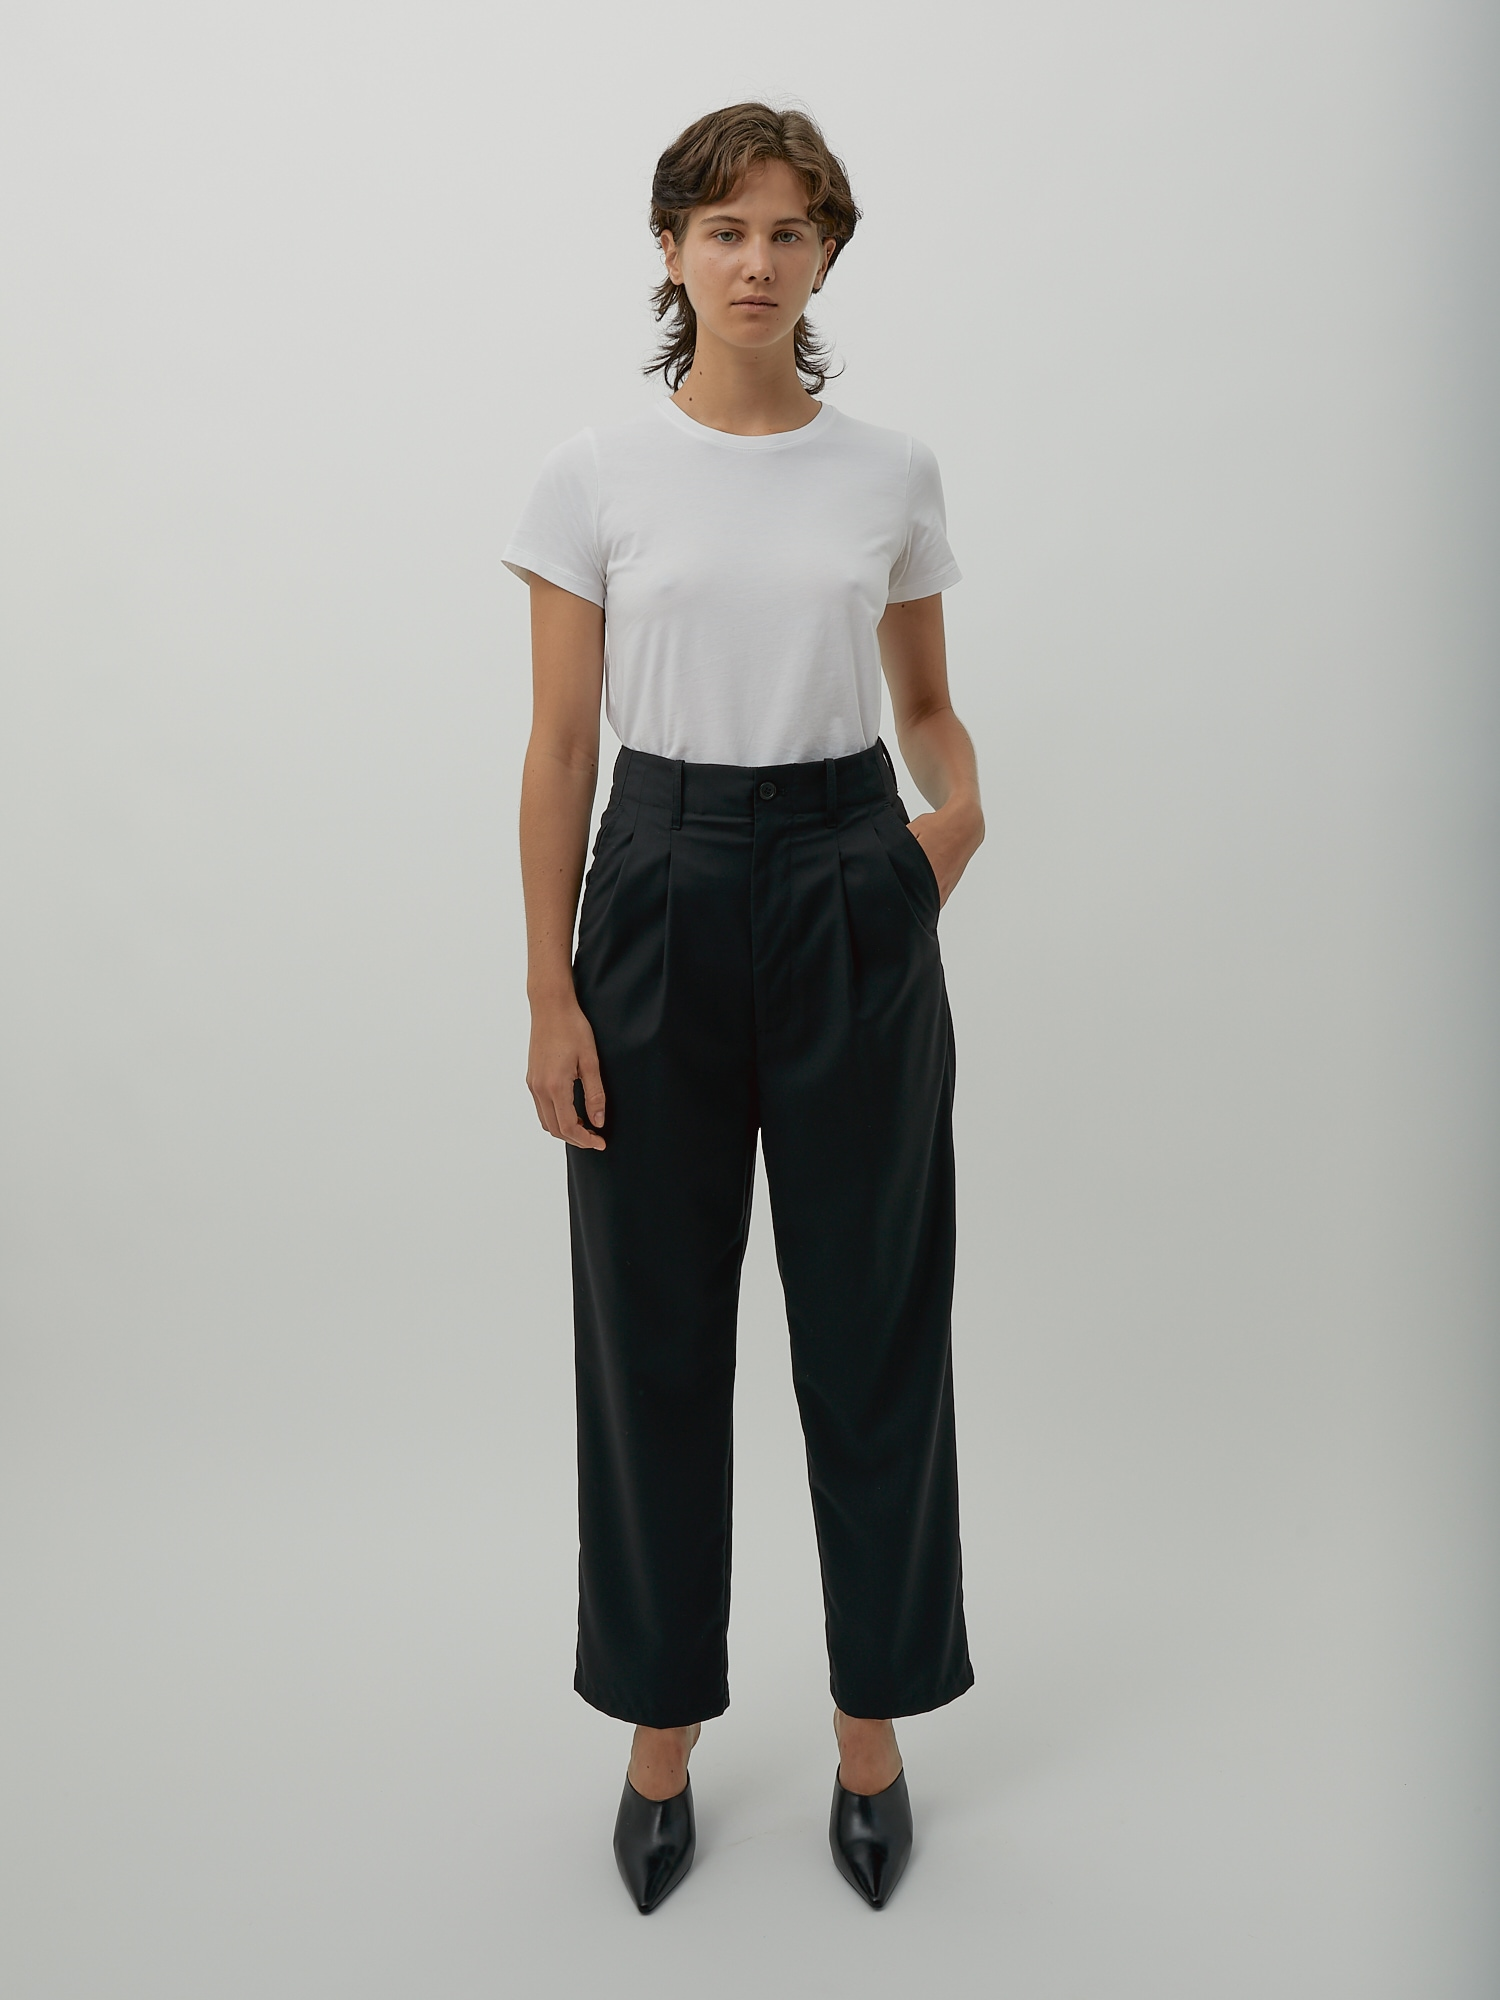 Black High Waisted Wide Leg Pants by One DNA